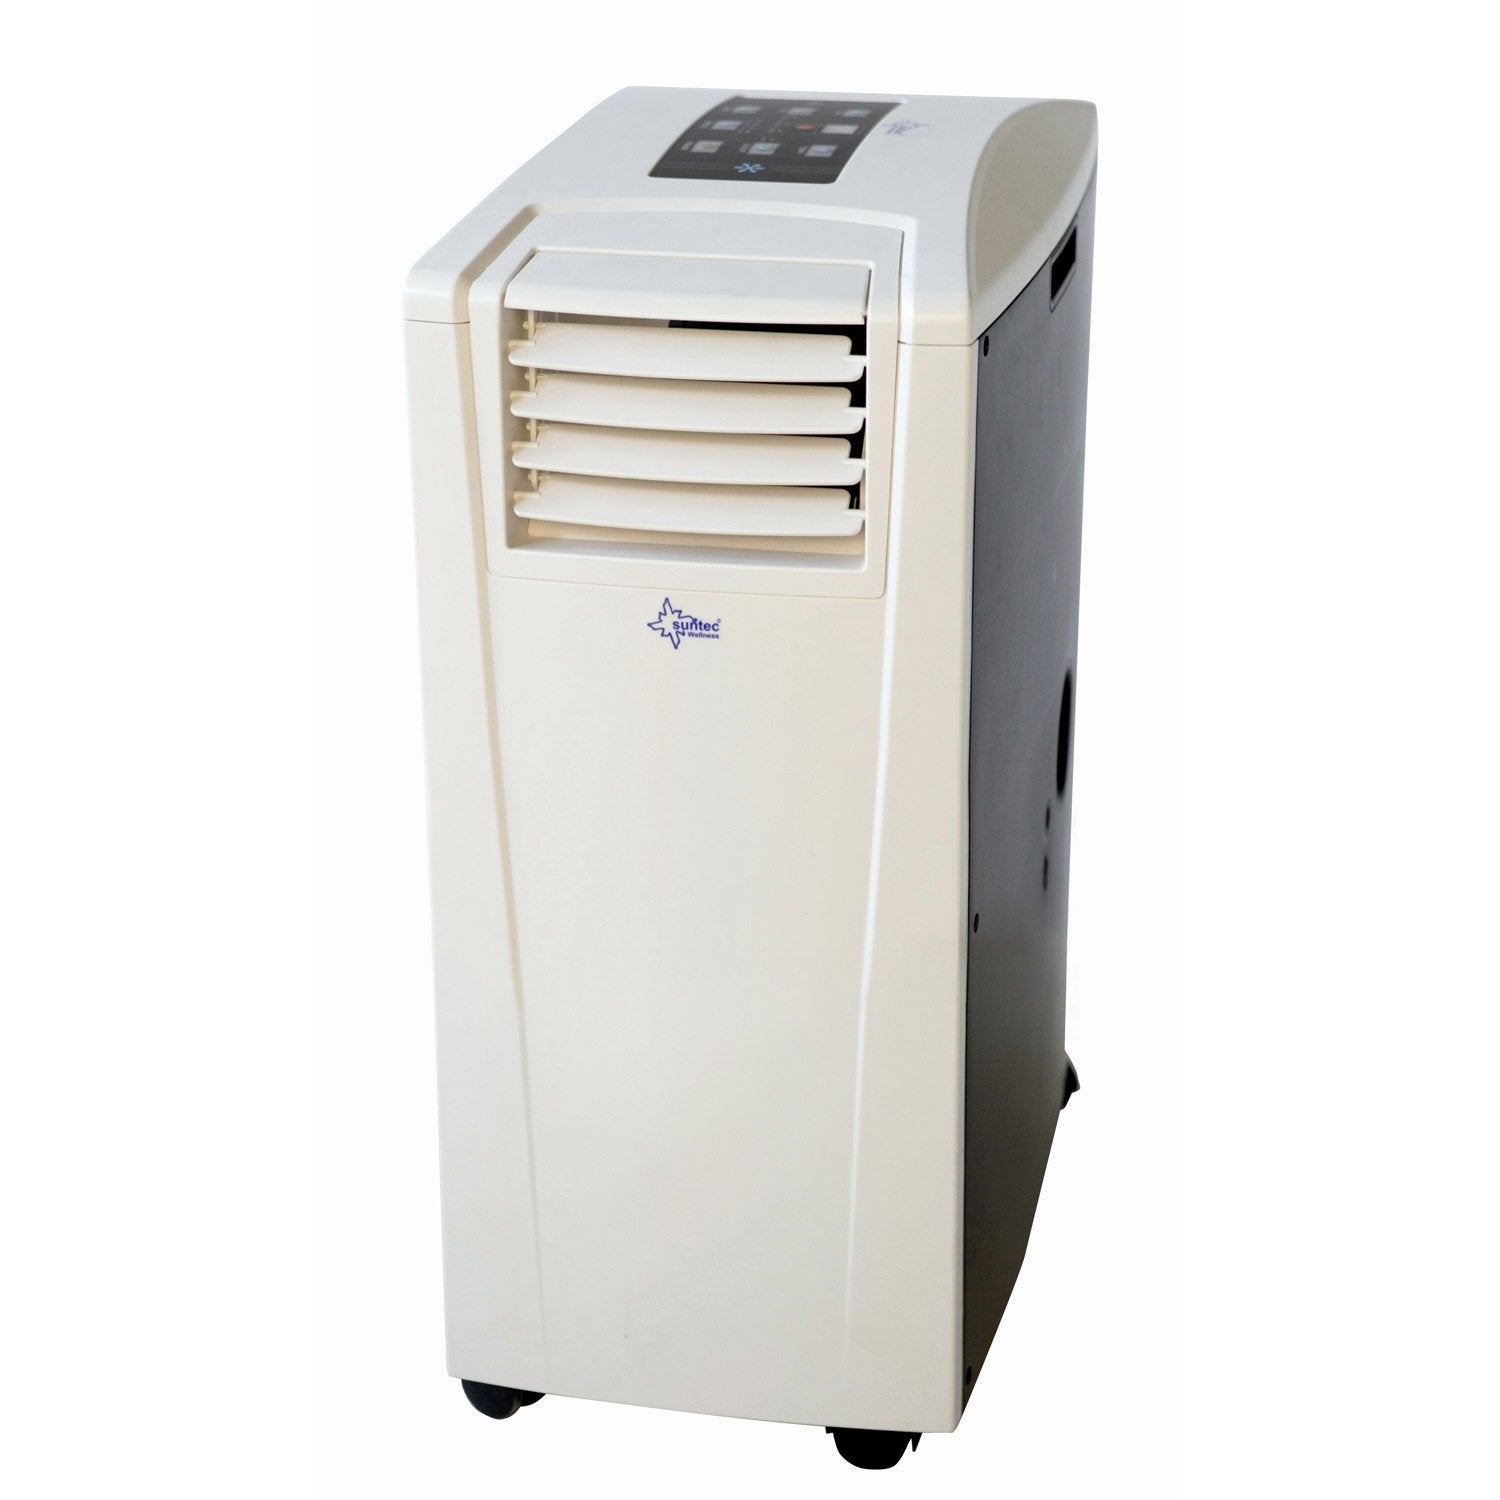 Climatiseur mobile r versible suntec transform 7000 rev 2000 w leroy merlin - Clim mobile leroy merlin ...